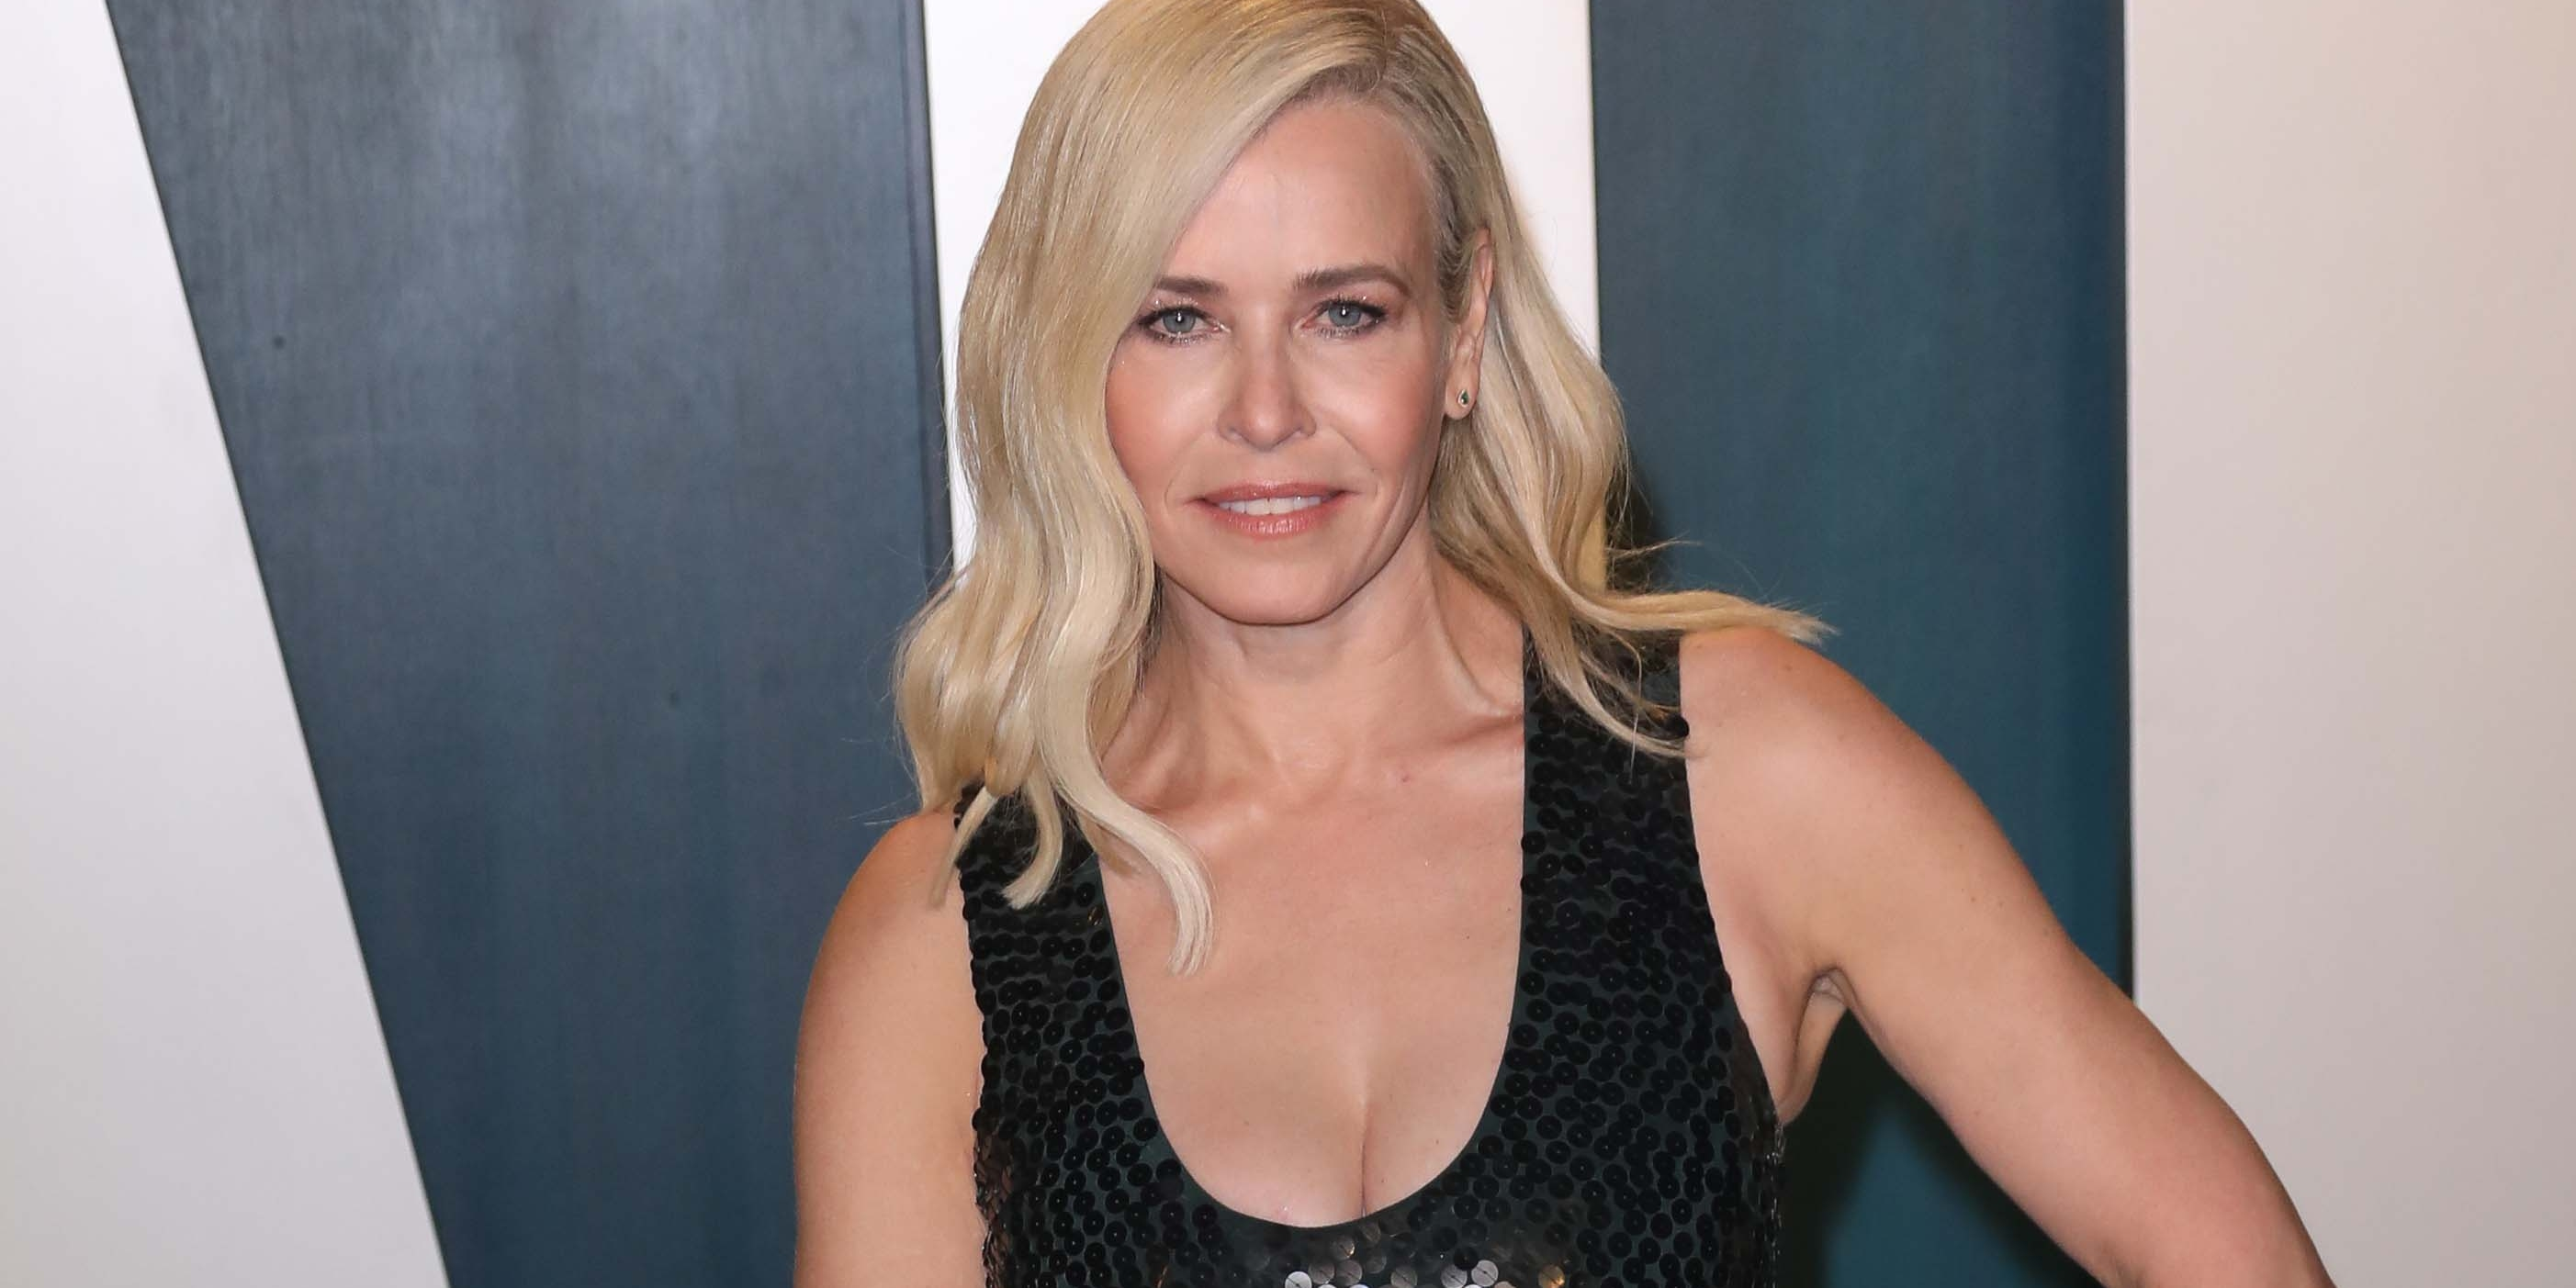 """Chelsea Handler said she was """"self-absorbed"""" for """"many years"""" during her run on 'Chelsea Lately,' which she hosted from 2007-2014. (Photo by Toni Anne Barson/WireImage)"""